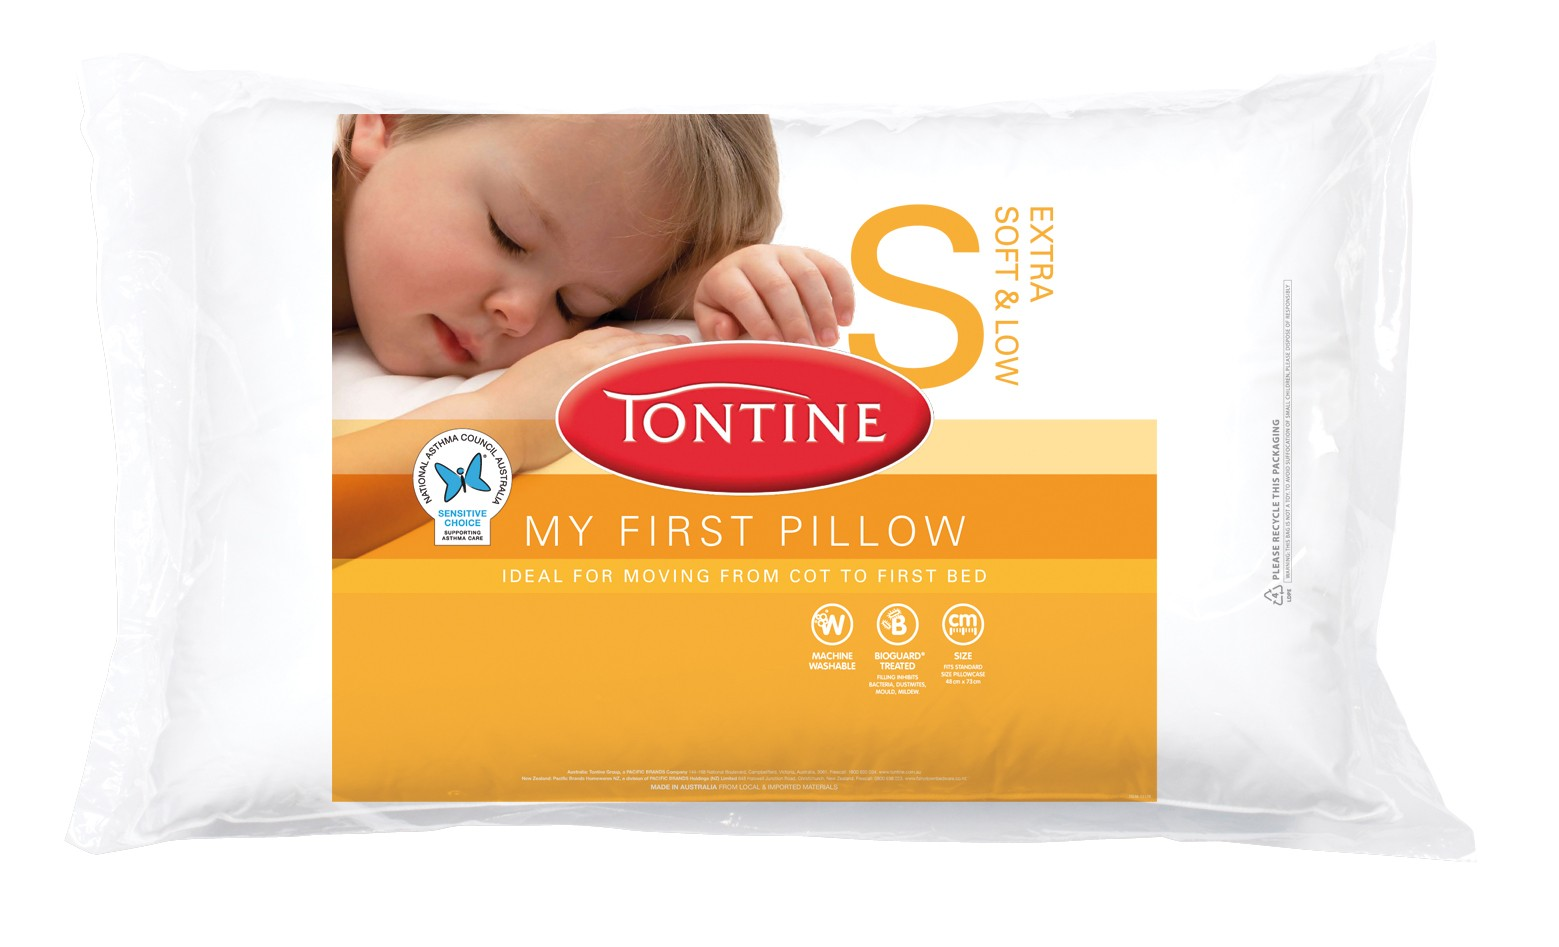 My First Pillow by Tontine